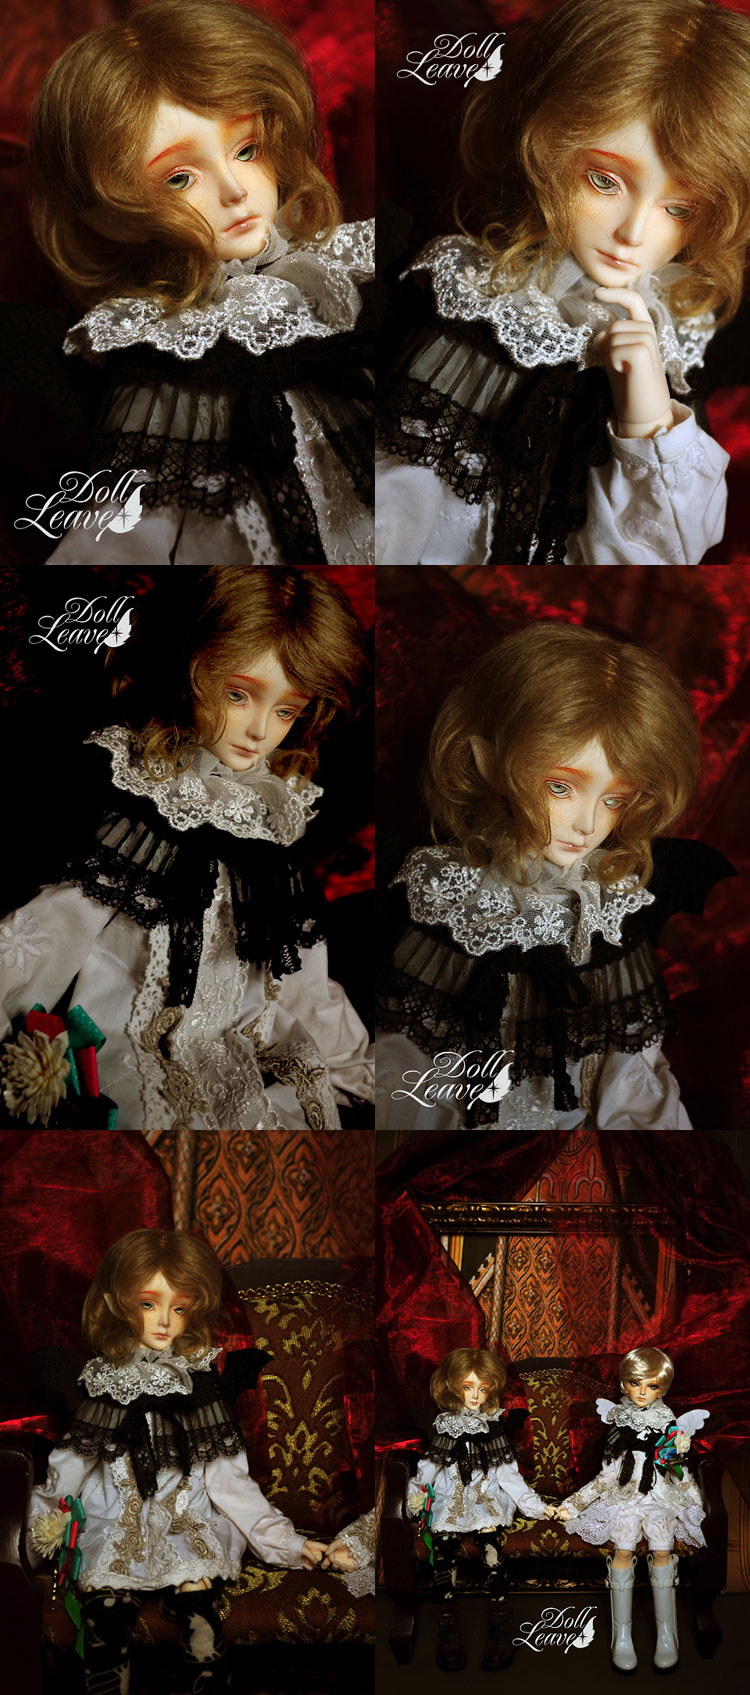 BJD Wish Boy 42cm Boll-jointed doll